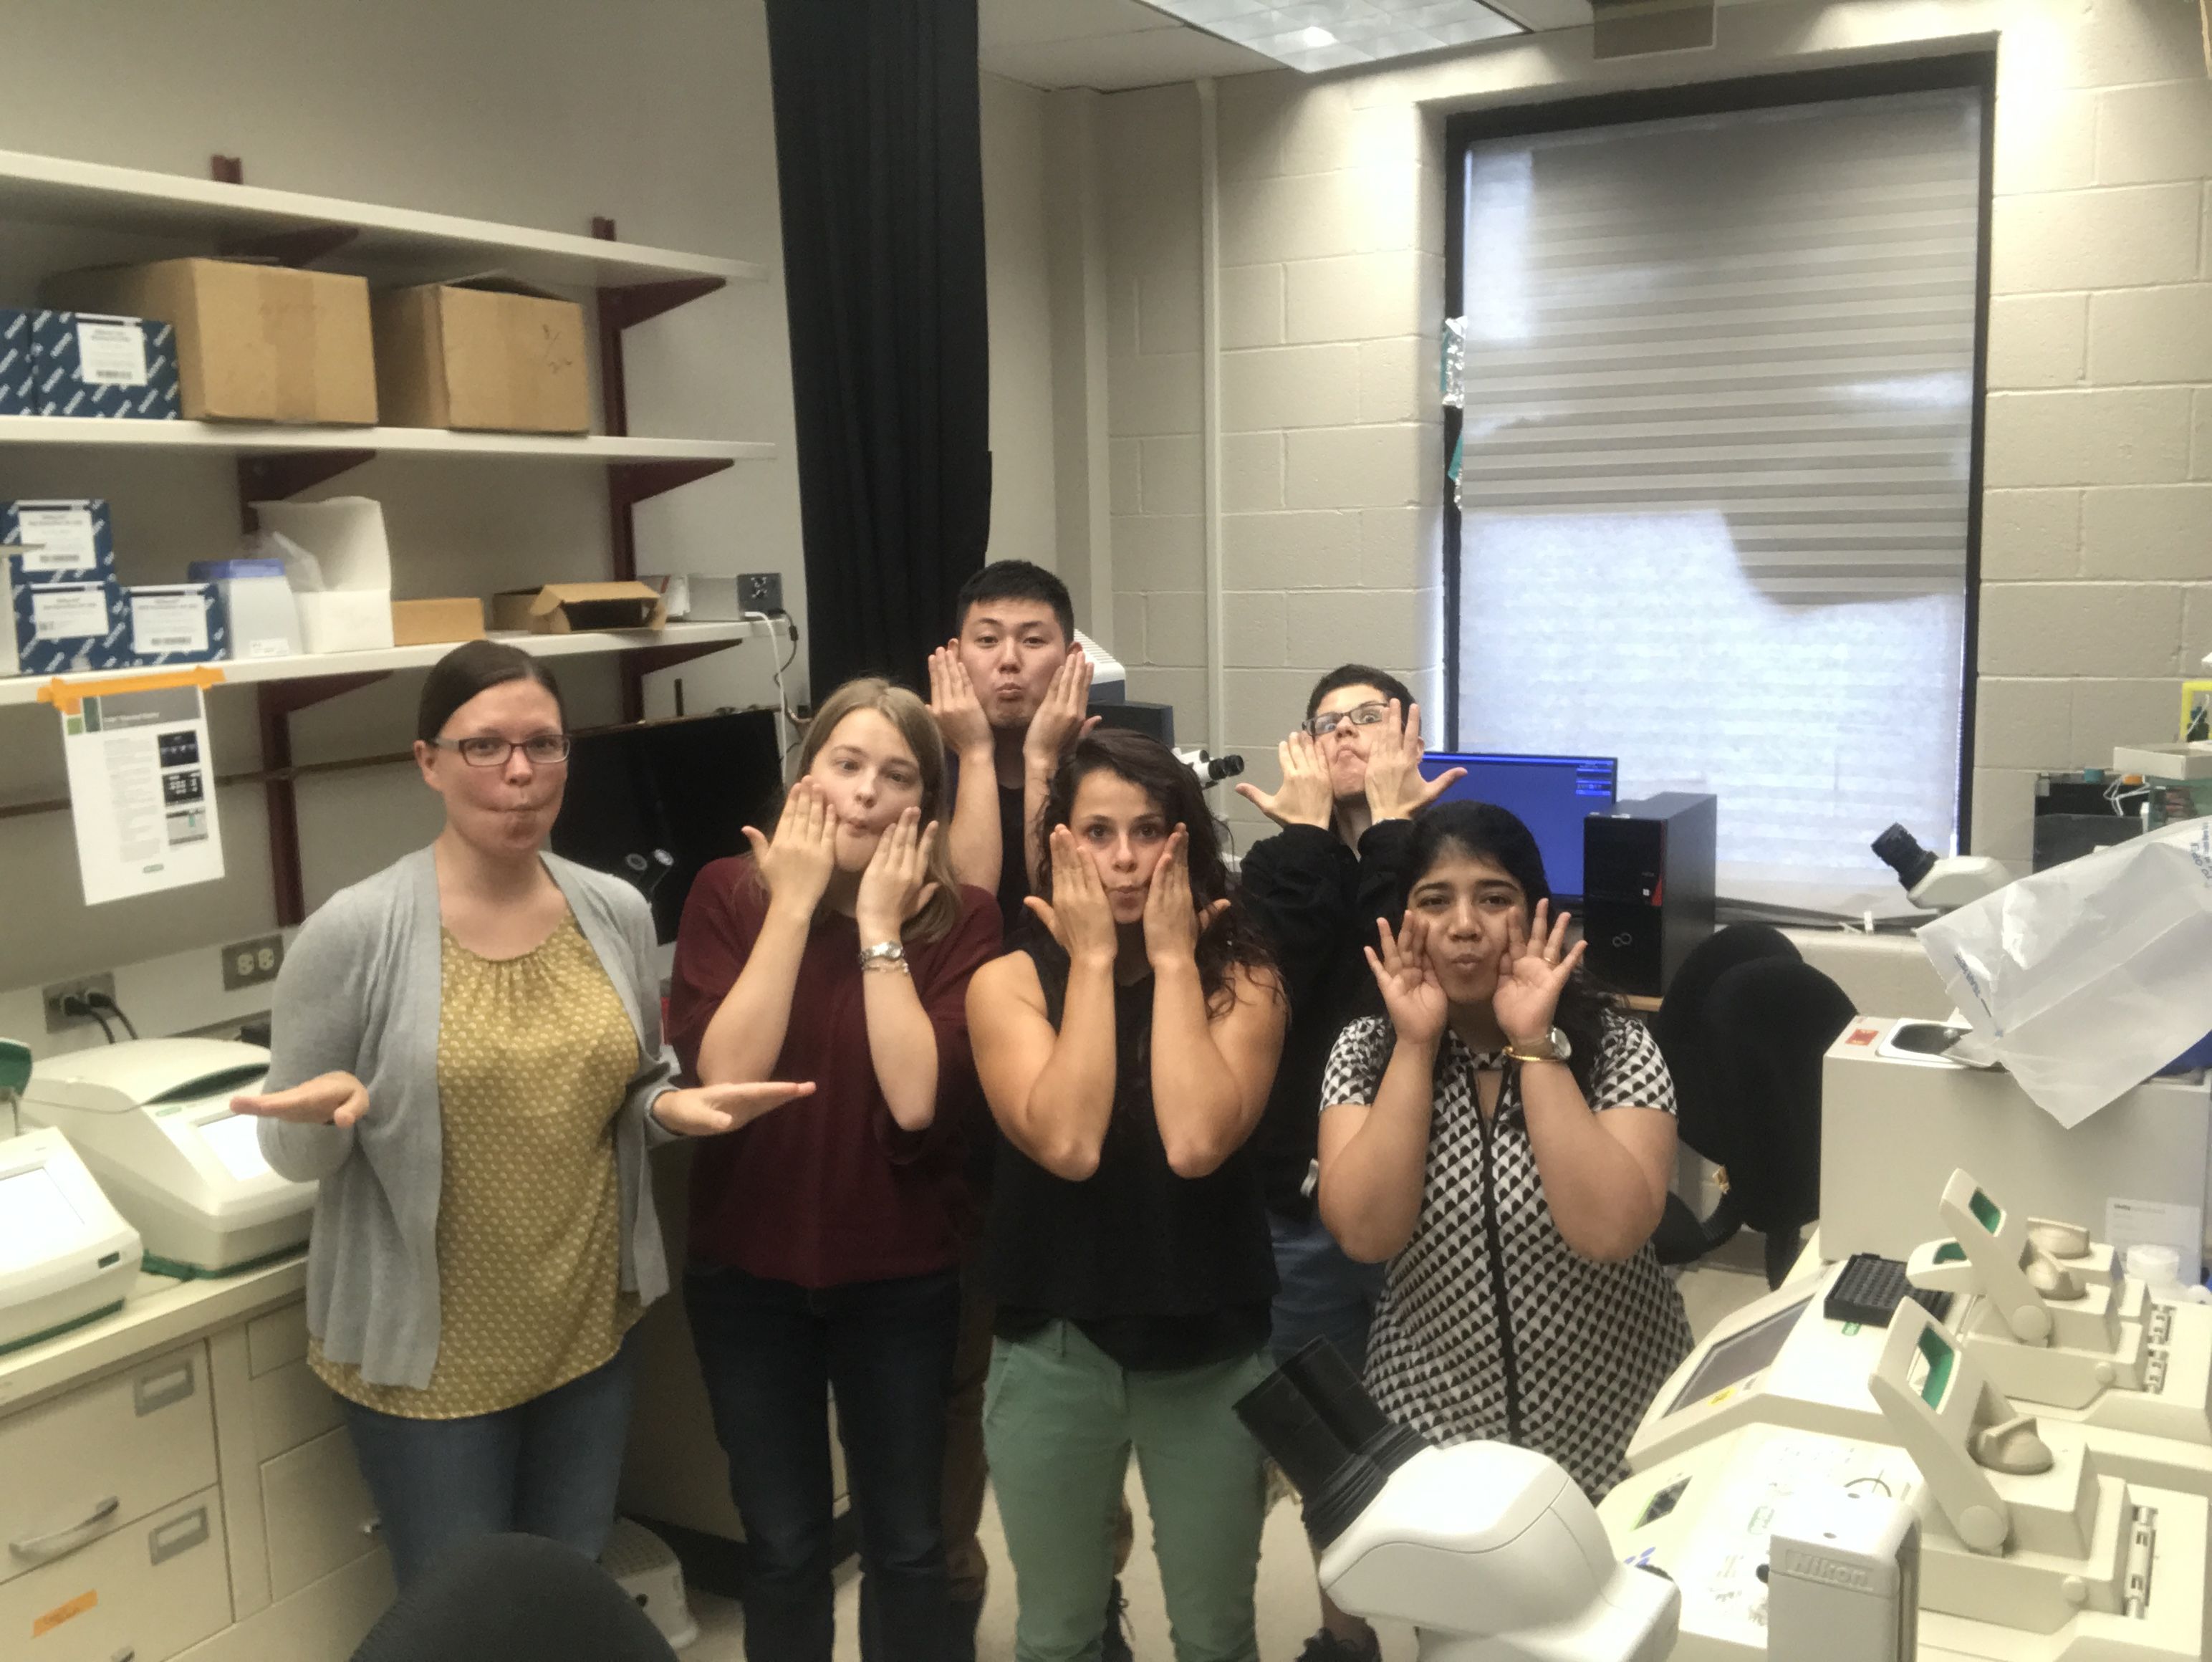 Drerup Lab staff in 2018, making silly faces.